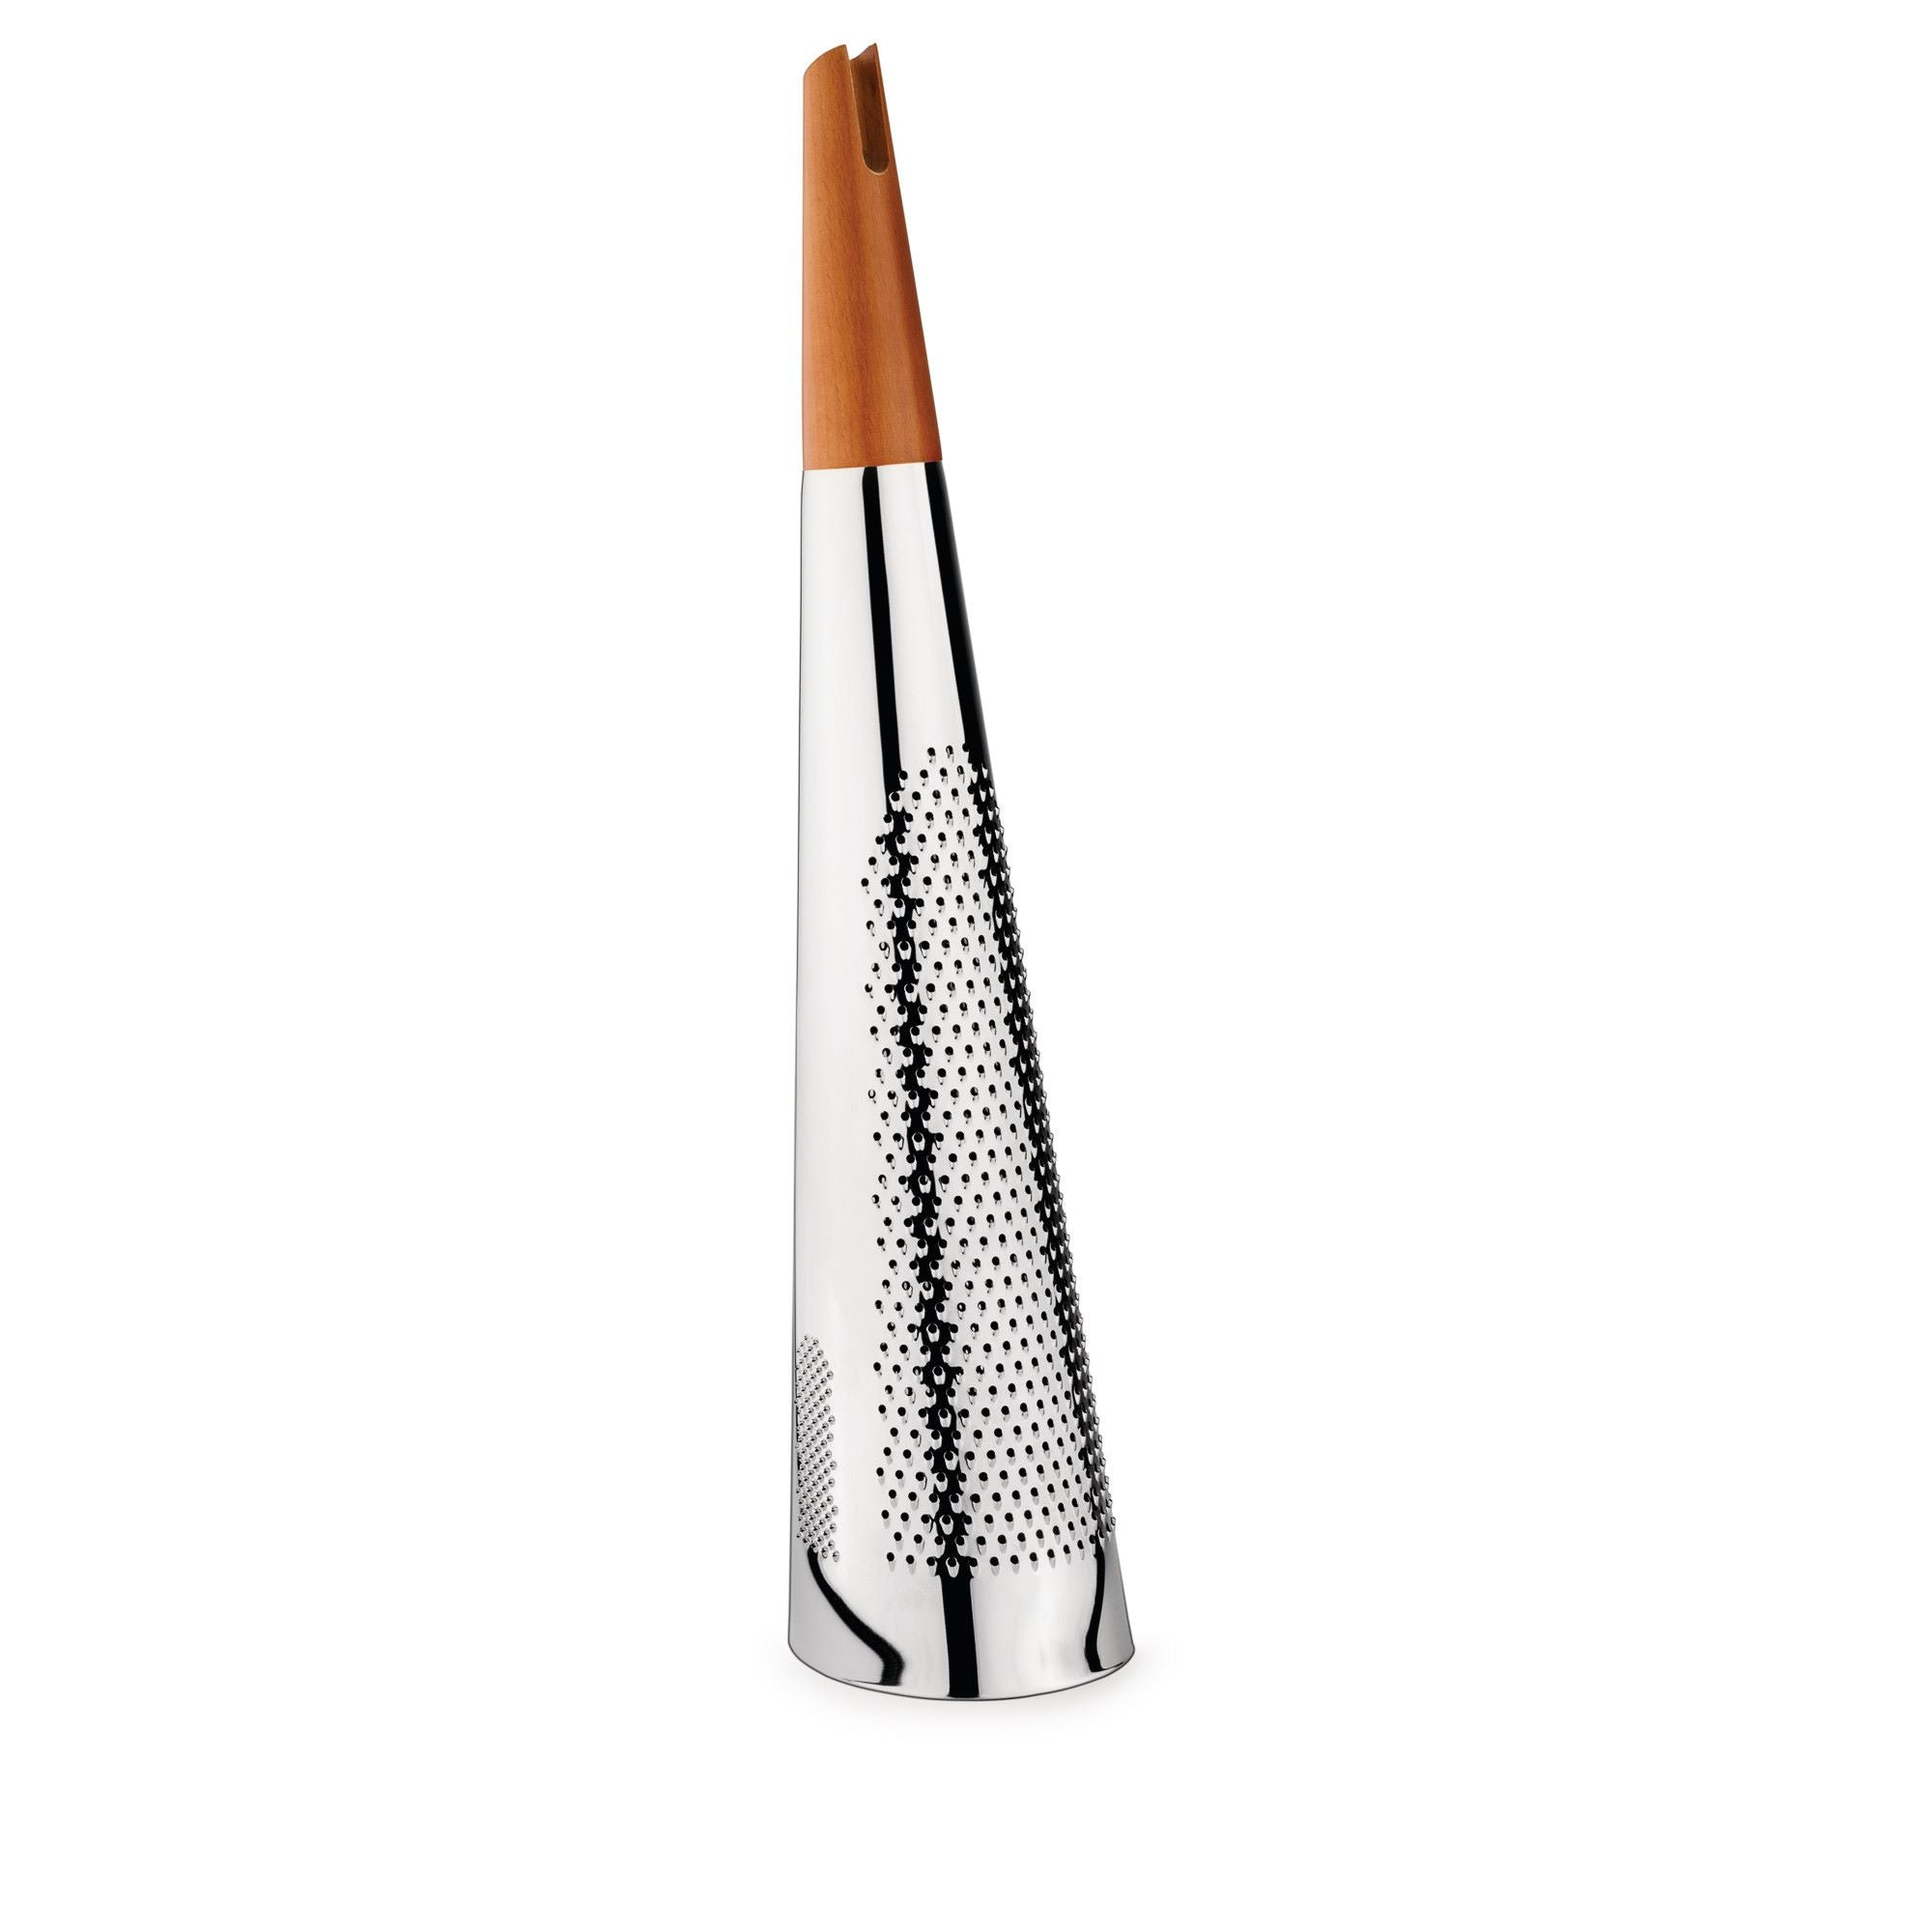 AlessiTodo Giant Cheese And Nutmeg Grater in Steel And Wood Silver